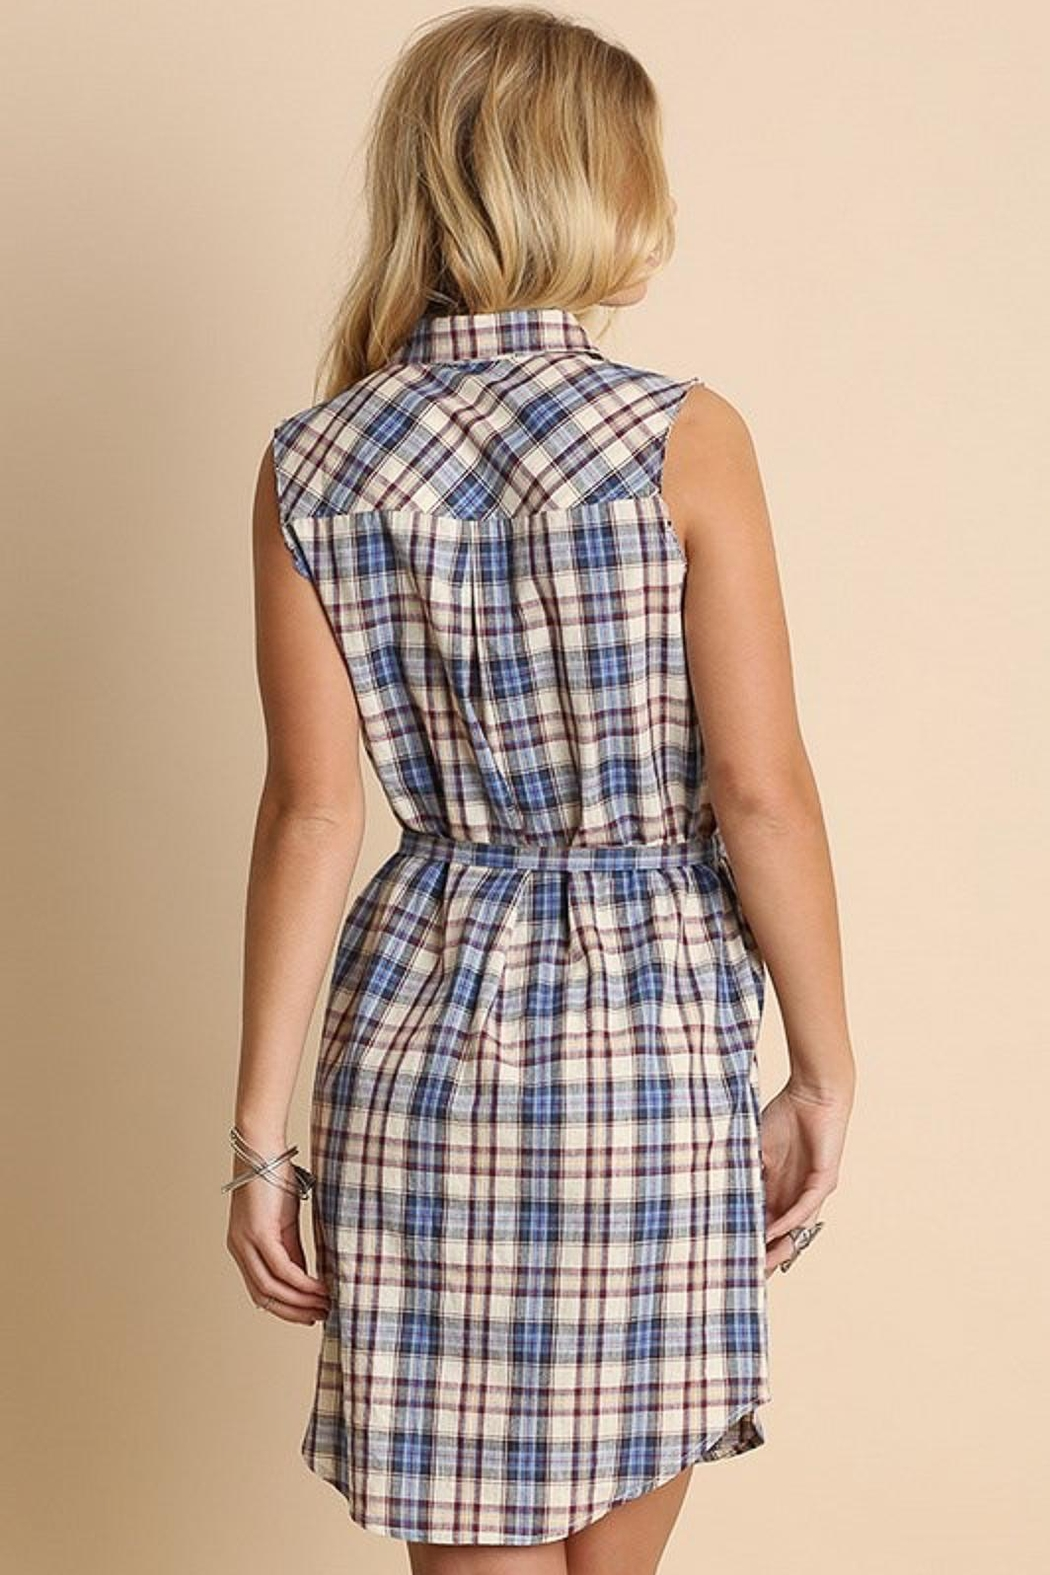 People Outfitter Anytime Plaid Dress - Side Cropped Image